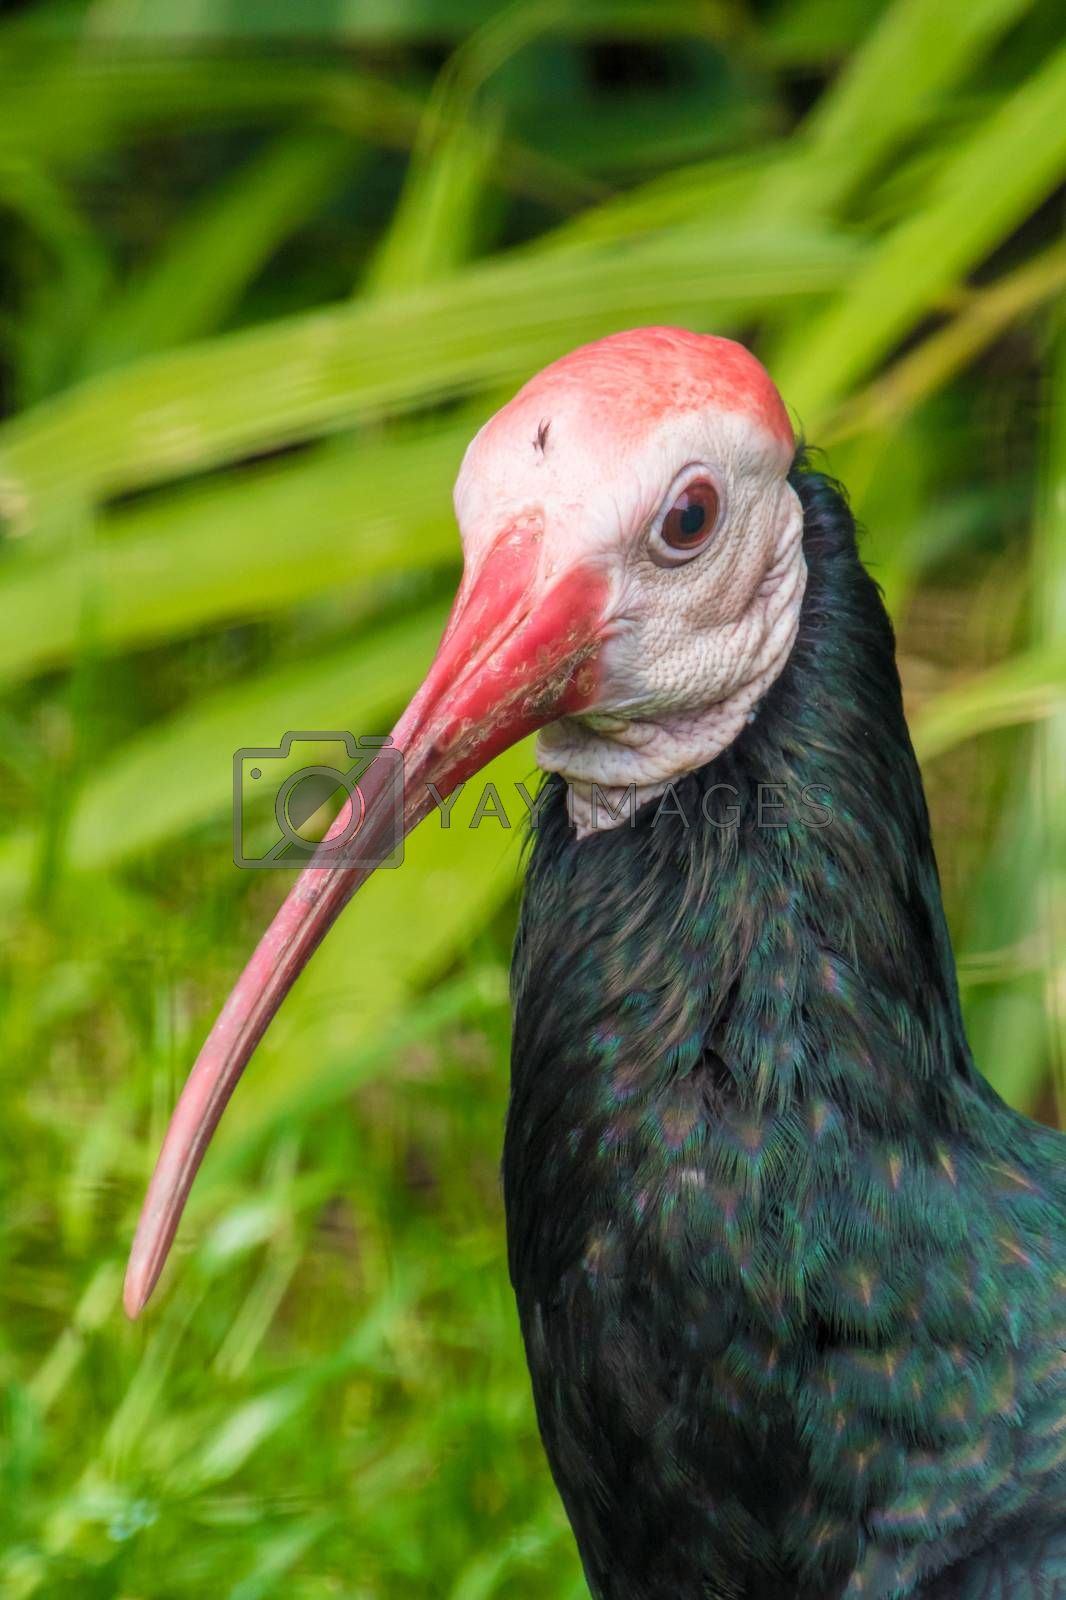 Exotic bird with long red beak and dark feathers